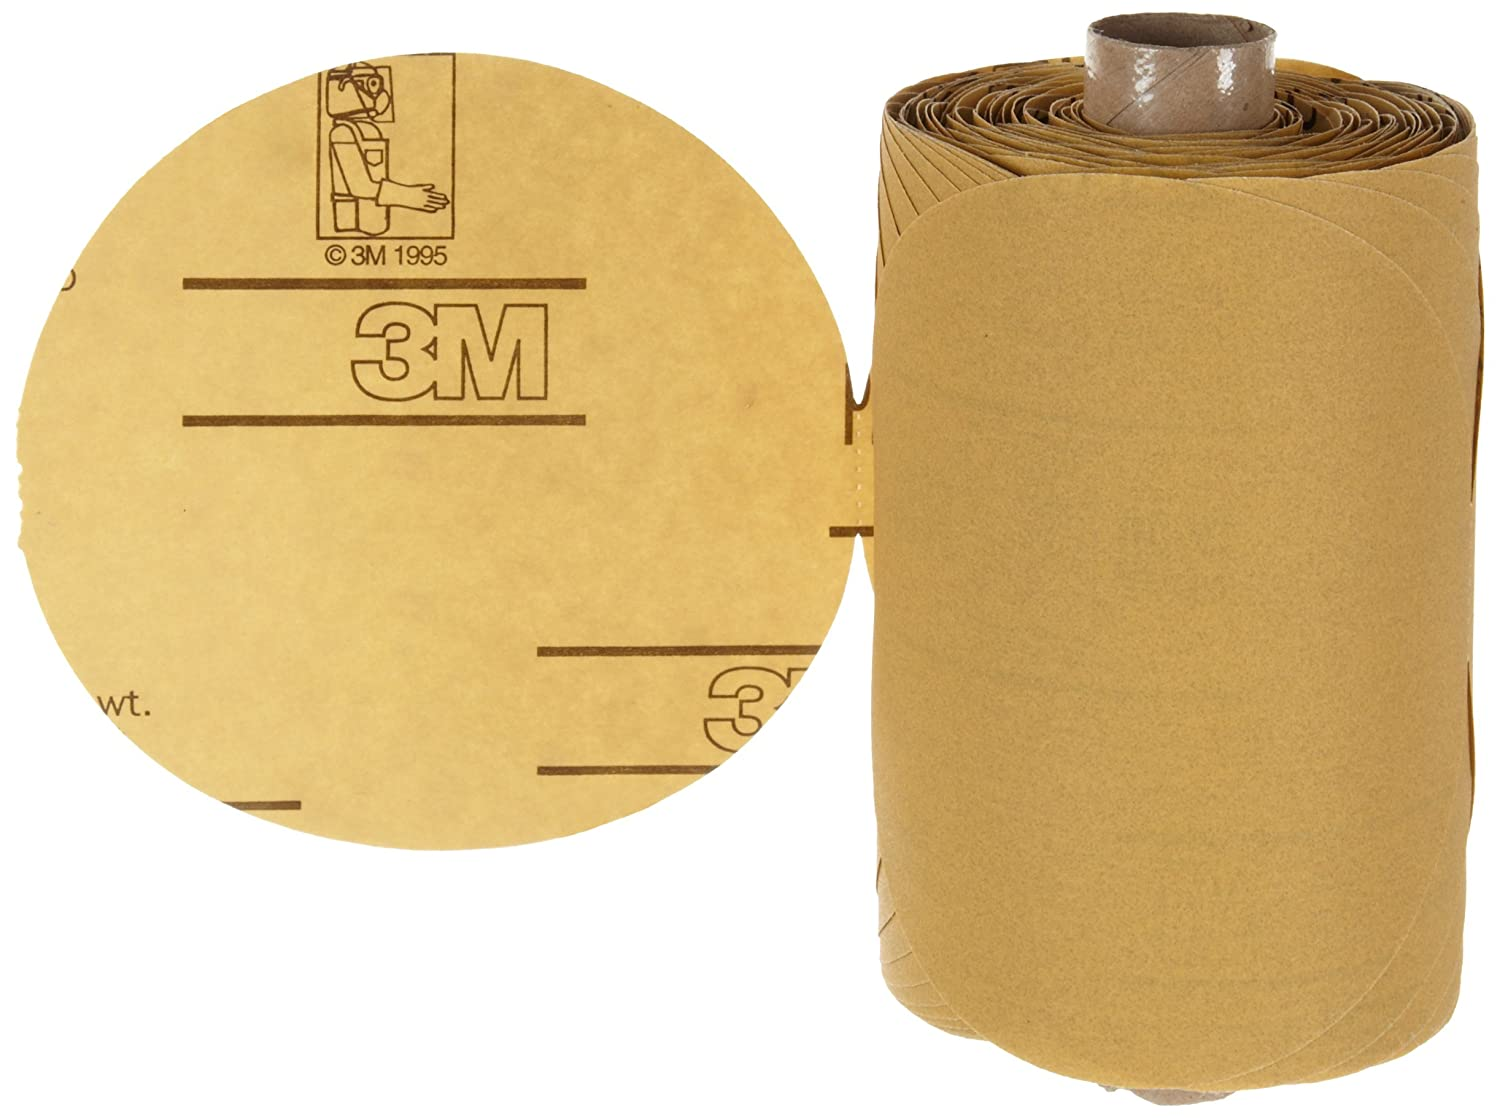 "3M Stikit Gold Paper Disc Roll 216U, Paper, PSA Attachment, Aluminum Oxide, 5"" Diameter, P280 Grit, Gold (Pack of 1) 81udZkY2guL._SL1500_"